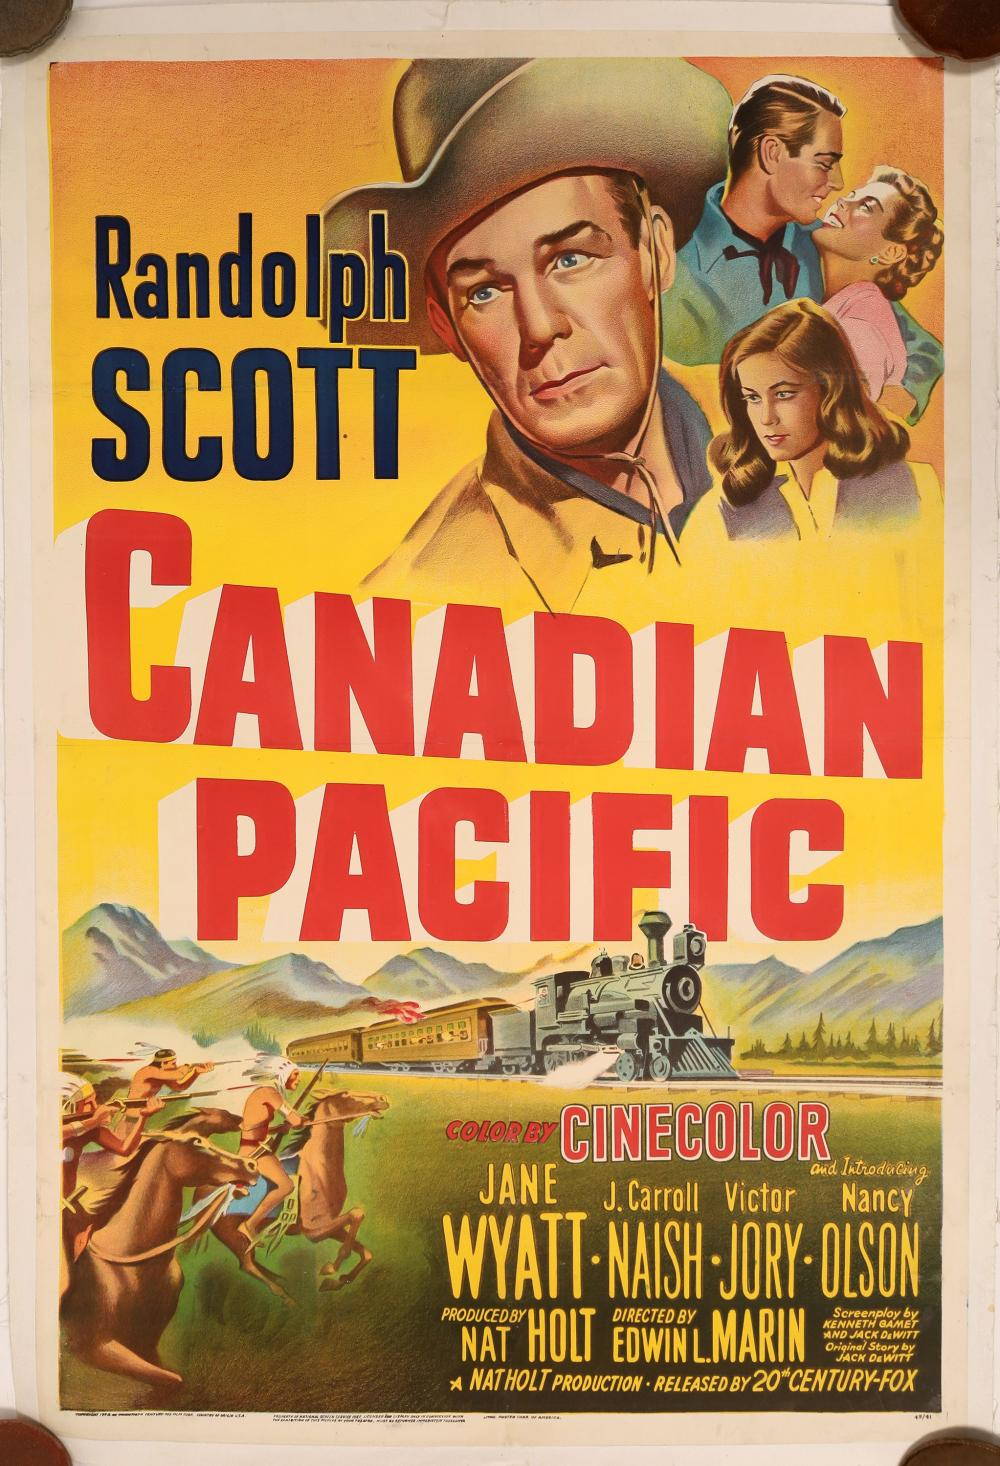 Canadian Pacific Movie Poster 1948 with Randolph Scott [139730]